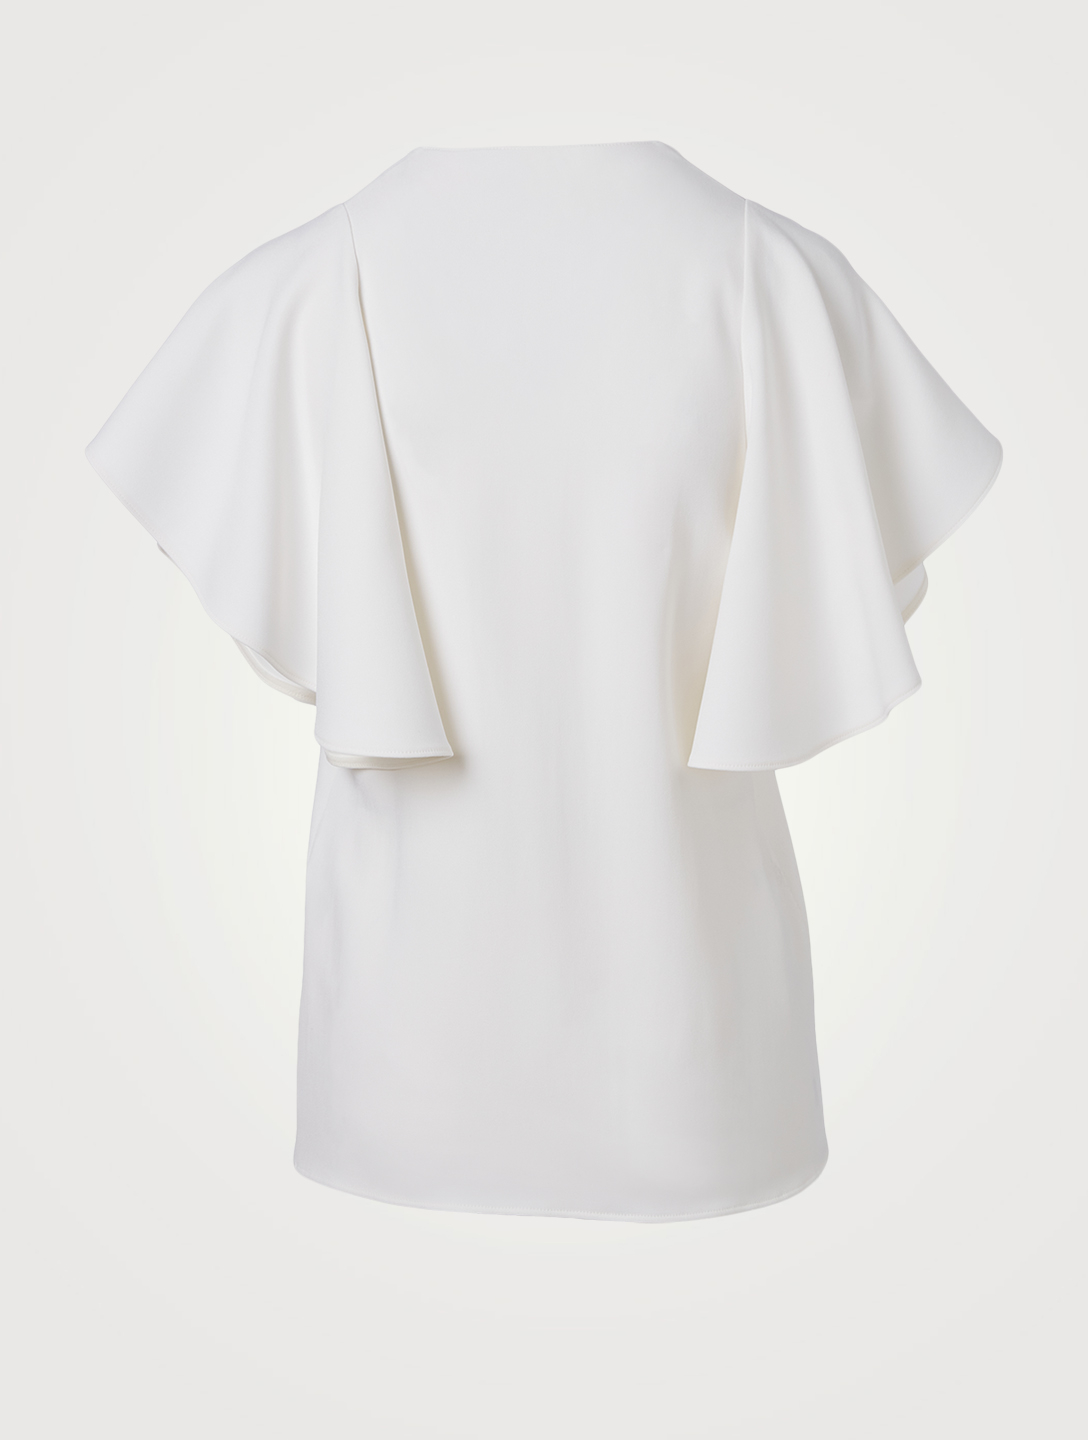 STELLA MCCARTNEY Mallory Stretch Cady Blouse Women's White